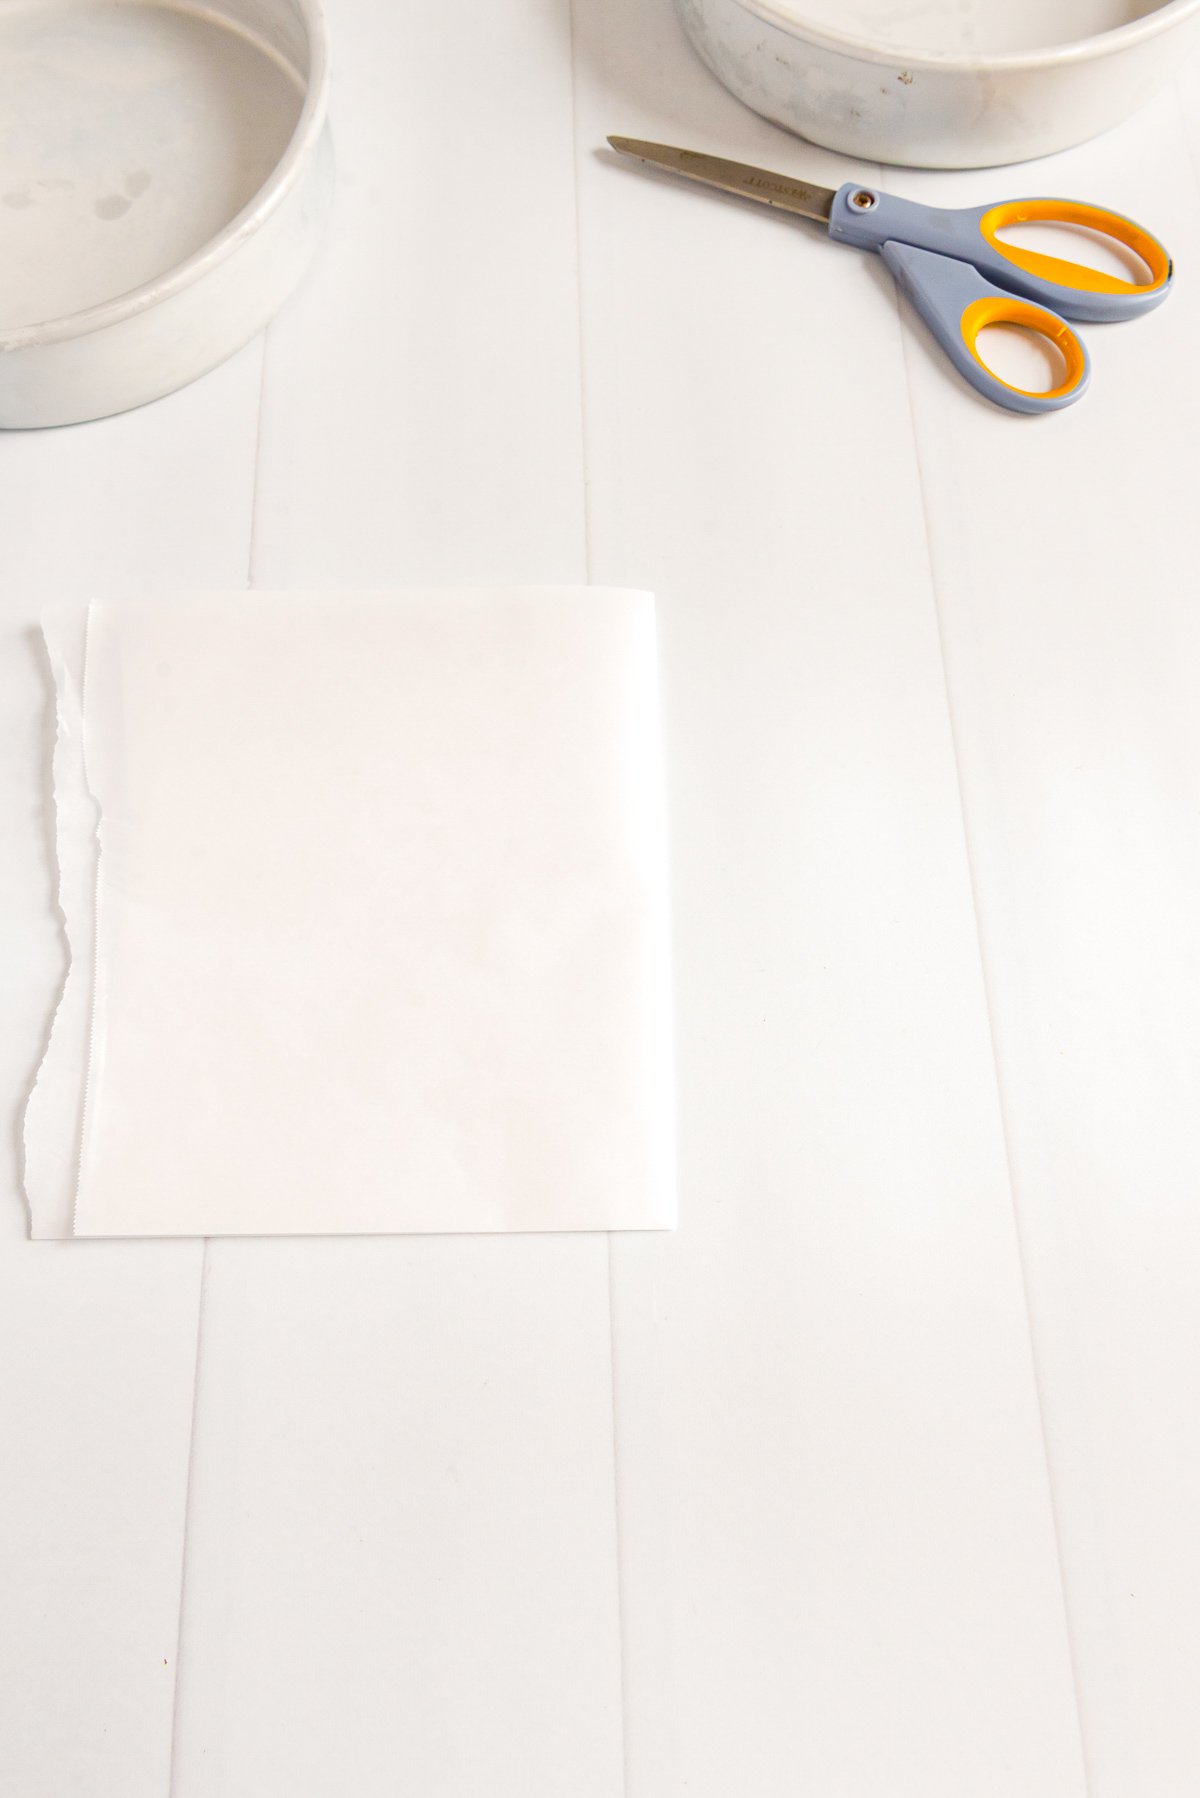 Piece of parchment paper folding in half with cake pans and scissors on the table.